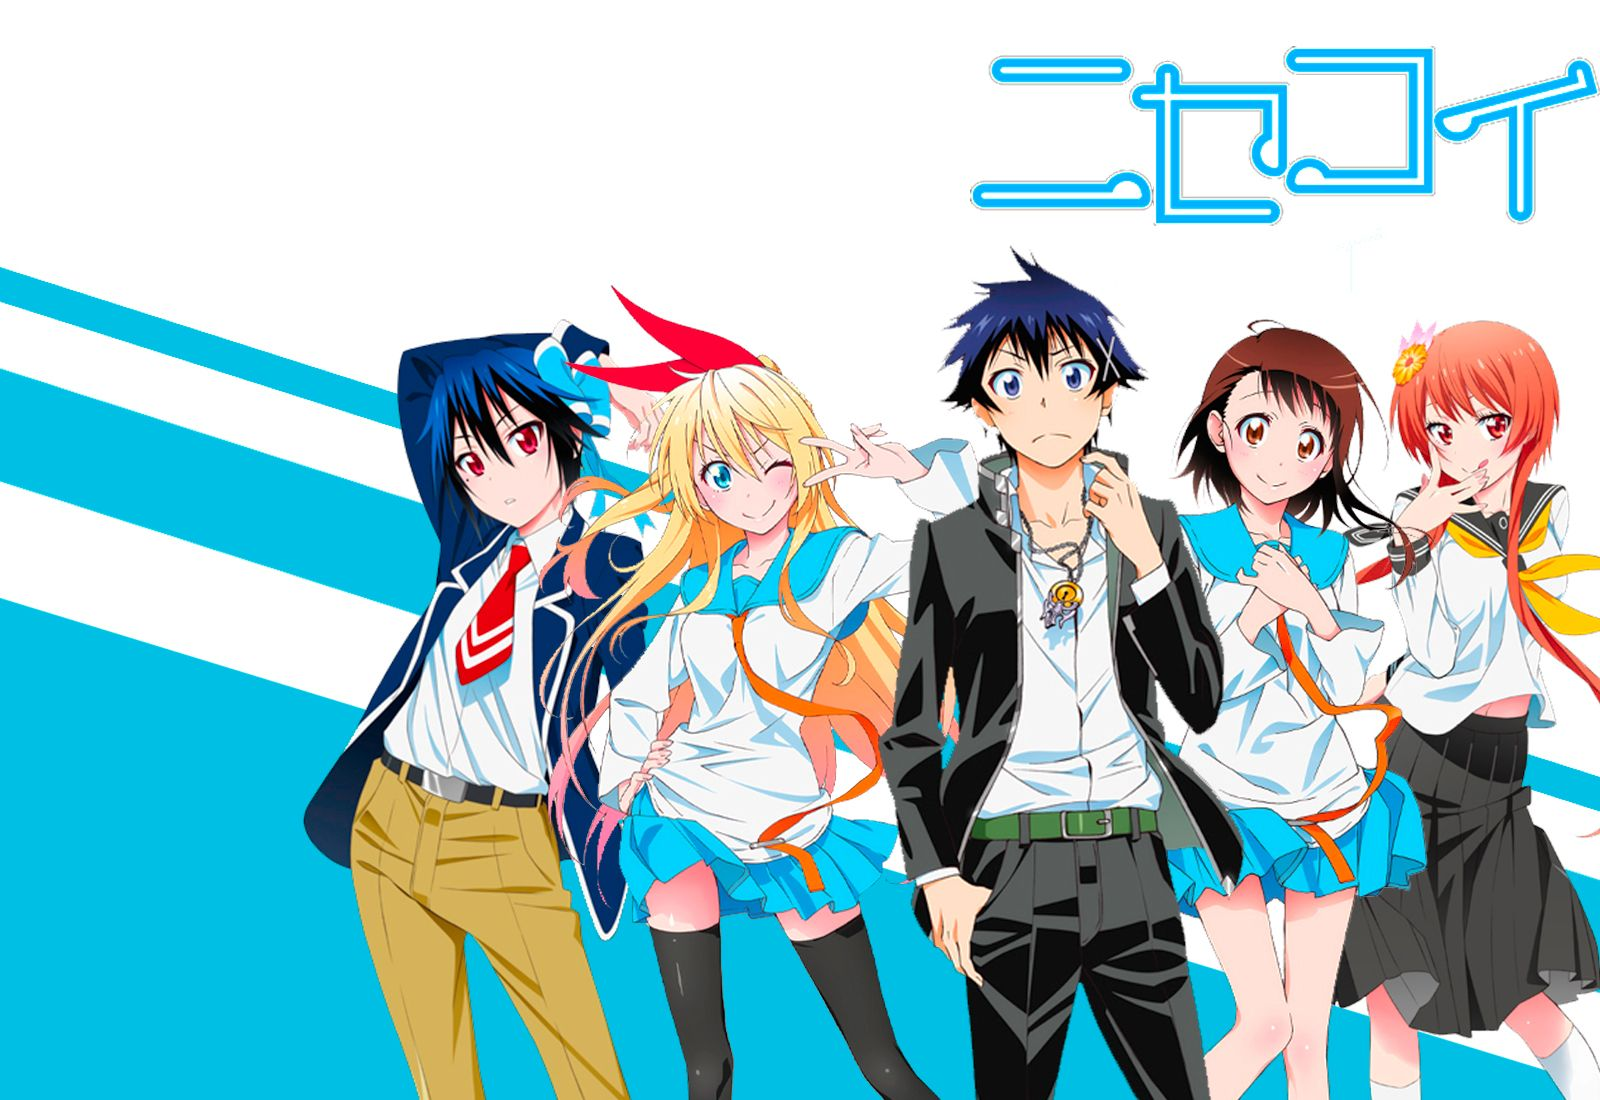 Nisekoi S1 Sub Indo Episode 01-20 End BD